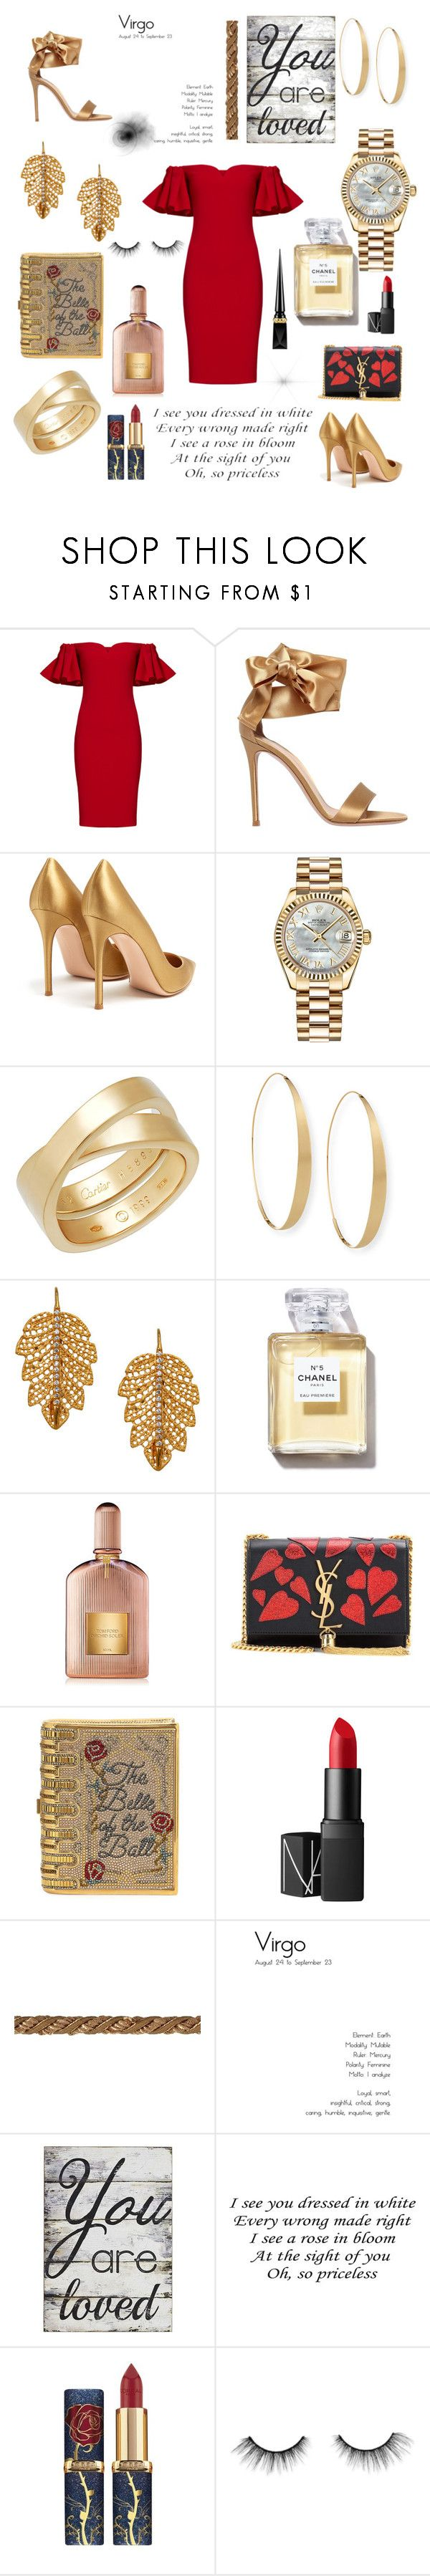 """""""Virgo - RedGold Double-Take."""" by phoenixdjb ❤ liked on Polyvore featuring Badgley Mischka, Gianvito Rossi, Rolex, Lana, Marika, Tom Ford, Yves Saint Laurent, Judith Leiber, NARS Cosmetics and Pier 1 Imports"""